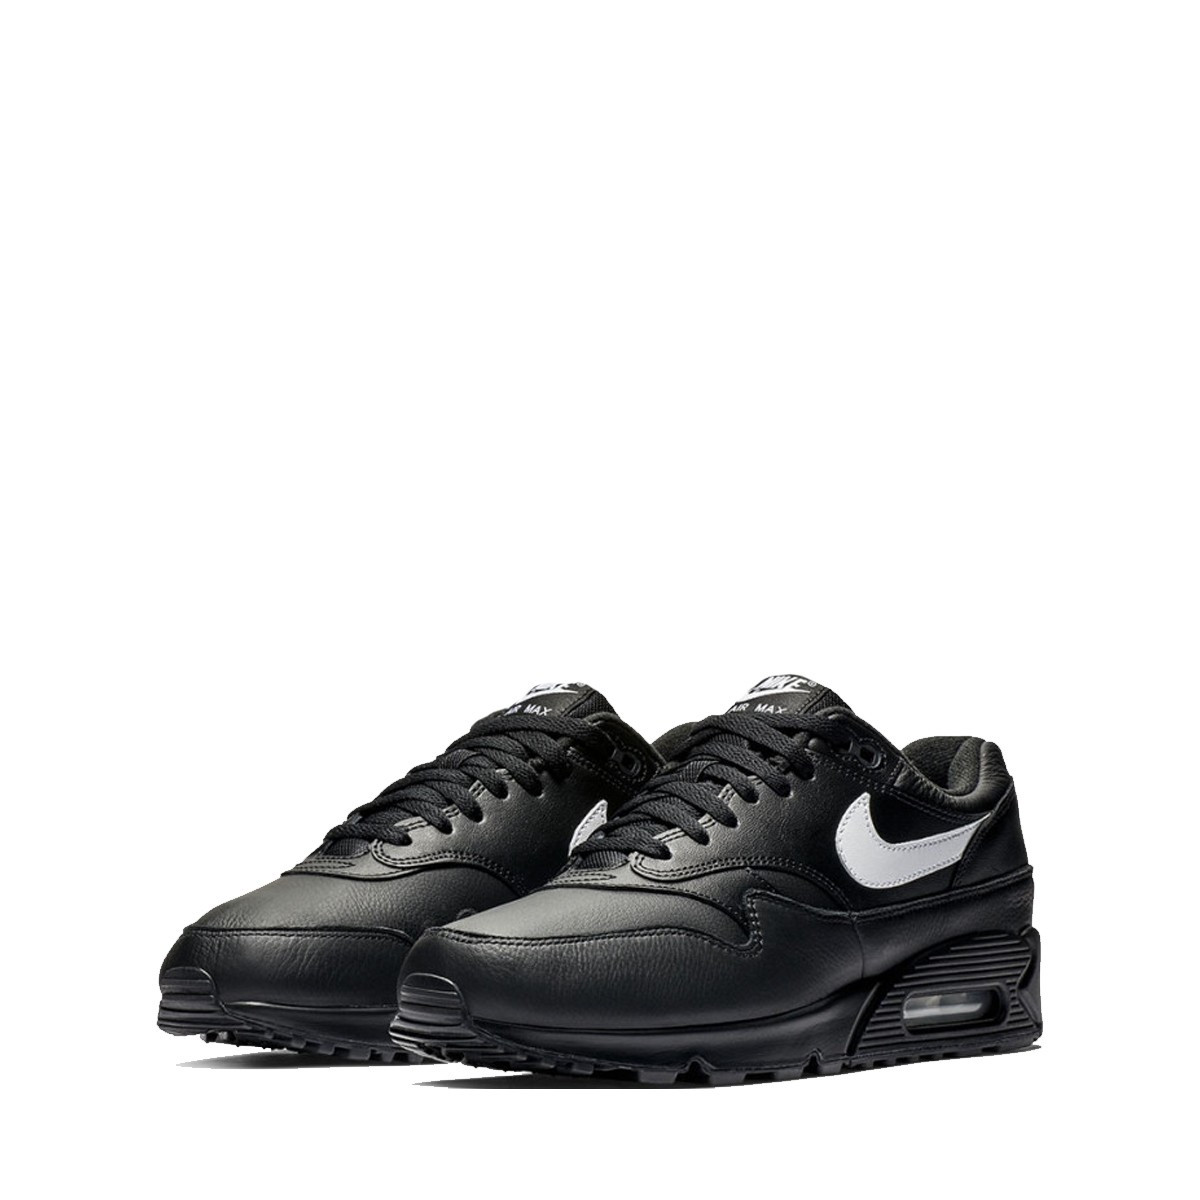 newest a1124 1141a Nike Basket Nike AIR MAX 90 1 - AJ7695-001. Loading zoom